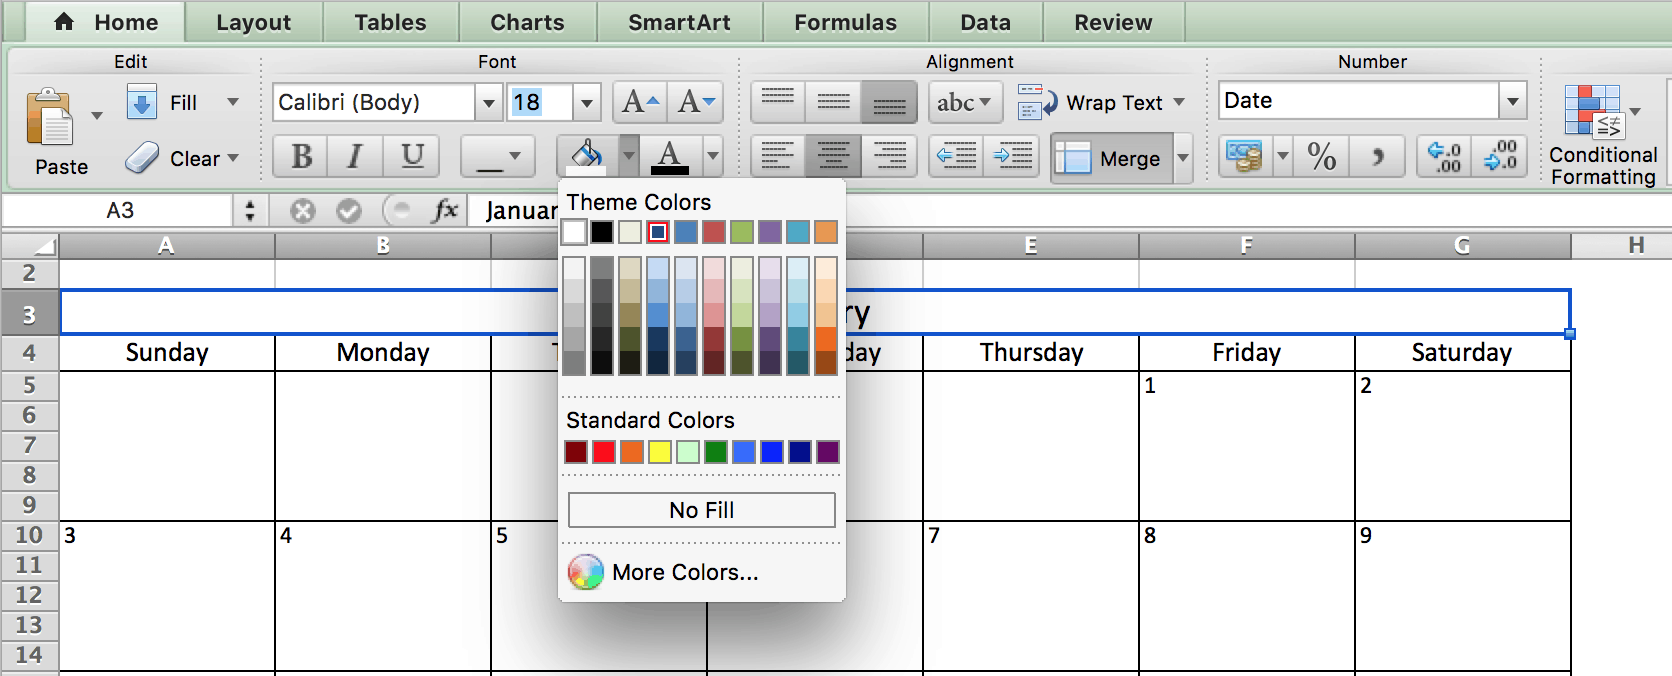 Ediblewildsus  Winsome Make A  Calendar In Excel Includes Free Template With Magnificent Choosing Colors  Calendar In Excel With Amazing Icon Set Excel Also Create A Form In Excel  In Addition Microsoft Excel Fill Handle And Excel Payment Schedule As Well As Excel Powerpivot Tutorial Additionally If Or Formula Excel From Smartsheetcom With Ediblewildsus  Magnificent Make A  Calendar In Excel Includes Free Template With Amazing Choosing Colors  Calendar In Excel And Winsome Icon Set Excel Also Create A Form In Excel  In Addition Microsoft Excel Fill Handle From Smartsheetcom